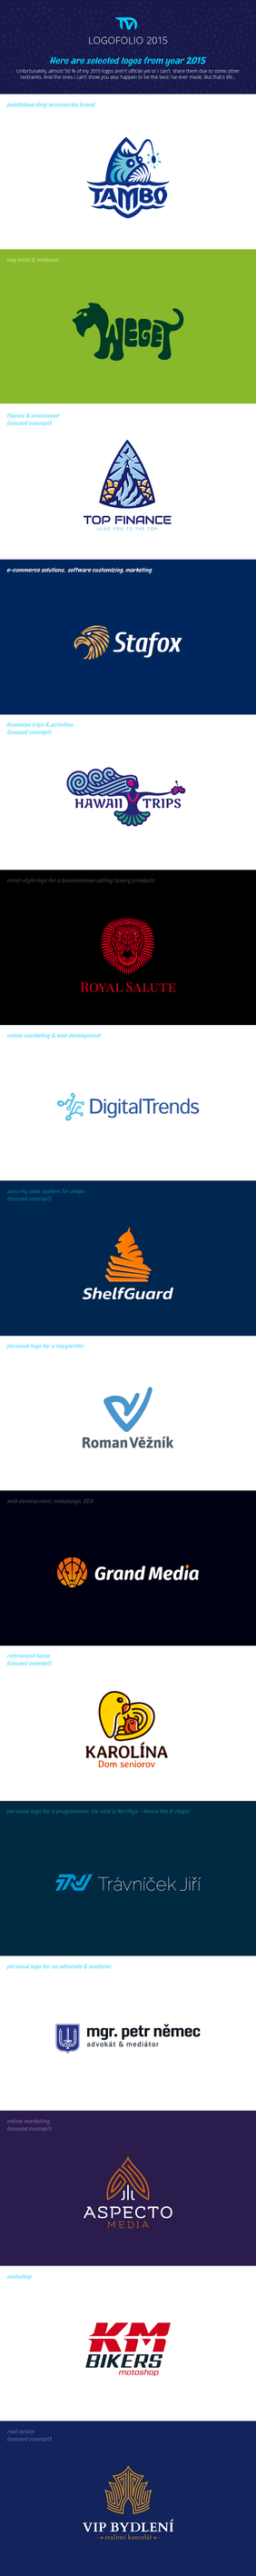 Logofolio 2015 by lVlorf3us